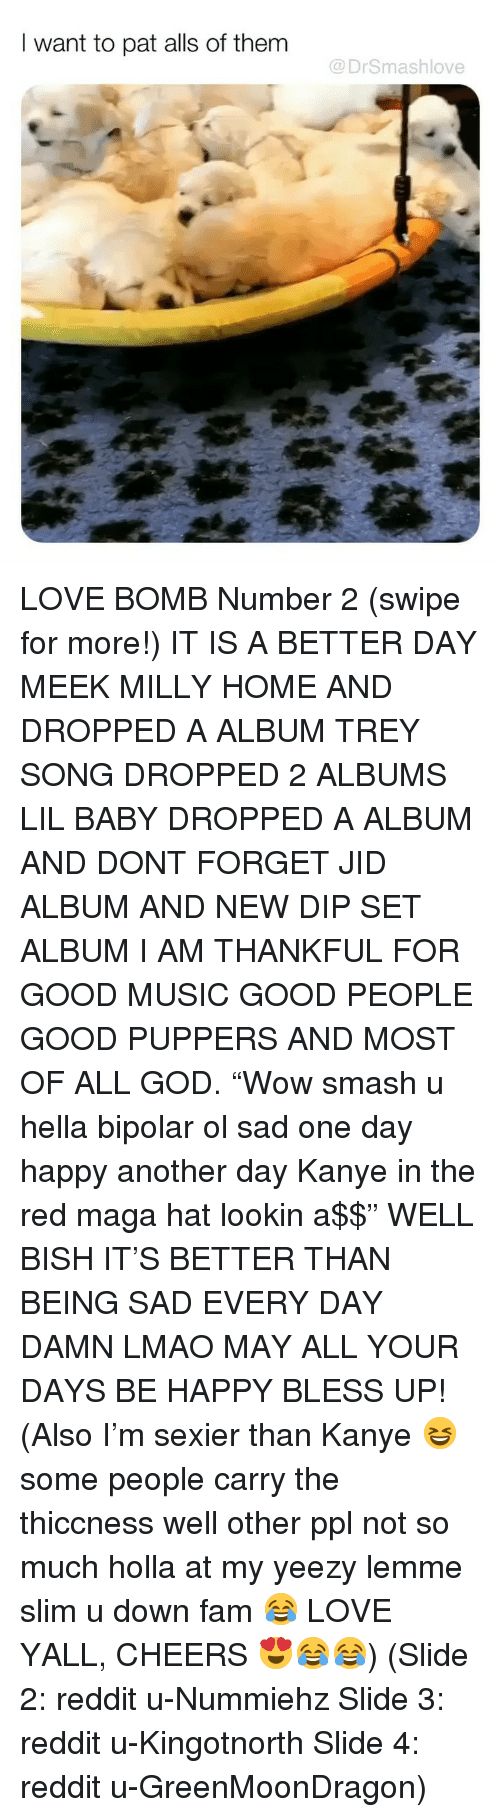 """Lil Baby: I want to pat alls of them  @DrSmashlove LOVE BOMB Number 2 (swipe for more!) IT IS A BETTER DAY MEEK MILLY HOME AND DROPPED A ALBUM TREY SONG DROPPED 2 ALBUMS LIL BABY DROPPED A ALBUM AND DONT FORGET JID ALBUM AND NEW DIP SET ALBUM I AM THANKFUL FOR GOOD MUSIC GOOD PEOPLE GOOD PUPPERS AND MOST OF ALL GOD. """"Wow smash u hella bipolar ol sad one day happy another day Kanye in the red maga hat lookin a$$"""" WELL BISH IT'S BETTER THAN BEING SAD EVERY DAY DAMN LMAO MAY ALL YOUR DAYS BE HAPPY BLESS UP! (Also I'm sexier than Kanye 😆 some people carry the thiccness well other ppl not so much holla at my yeezy lemme slim u down fam 😂 LOVE YALL, CHEERS 😍😂😂) (Slide 2: reddit u-Nummiehz Slide 3: reddit u-Kingotnorth Slide 4: reddit u-GreenMoonDragon)"""